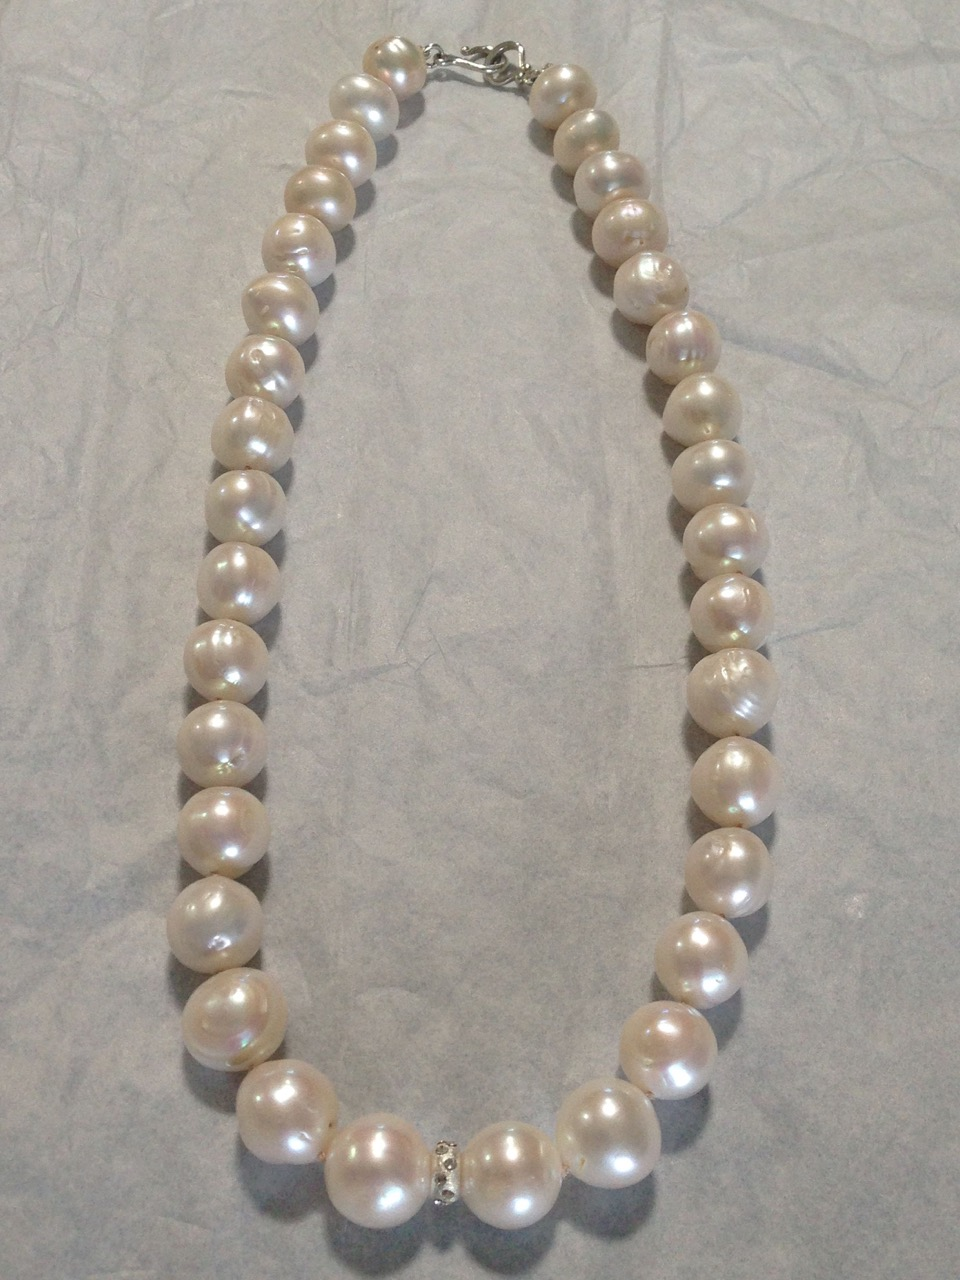 12mm White Freshwater Pearls w/s.s., cz spacers, single strand necklace